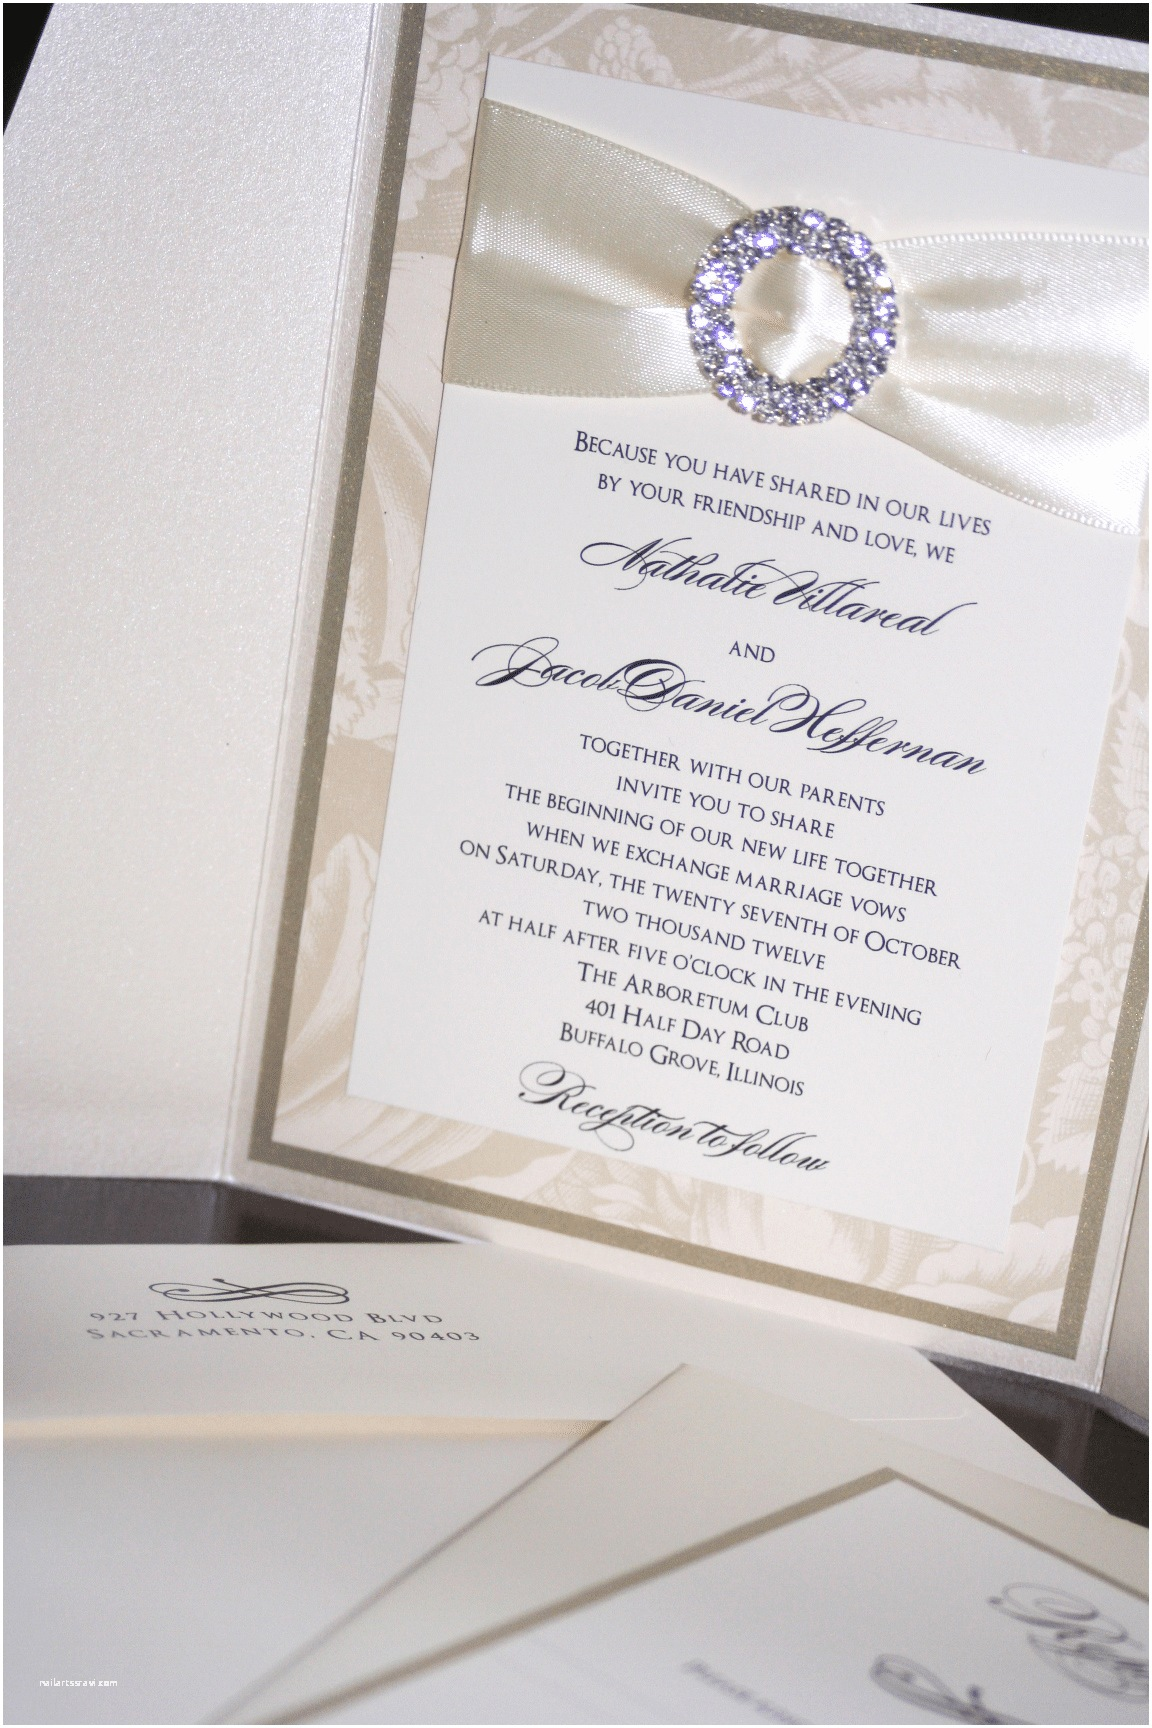 Champagne Wedding Invitations Champagne Wedding Invitations too Chic & Little Shab